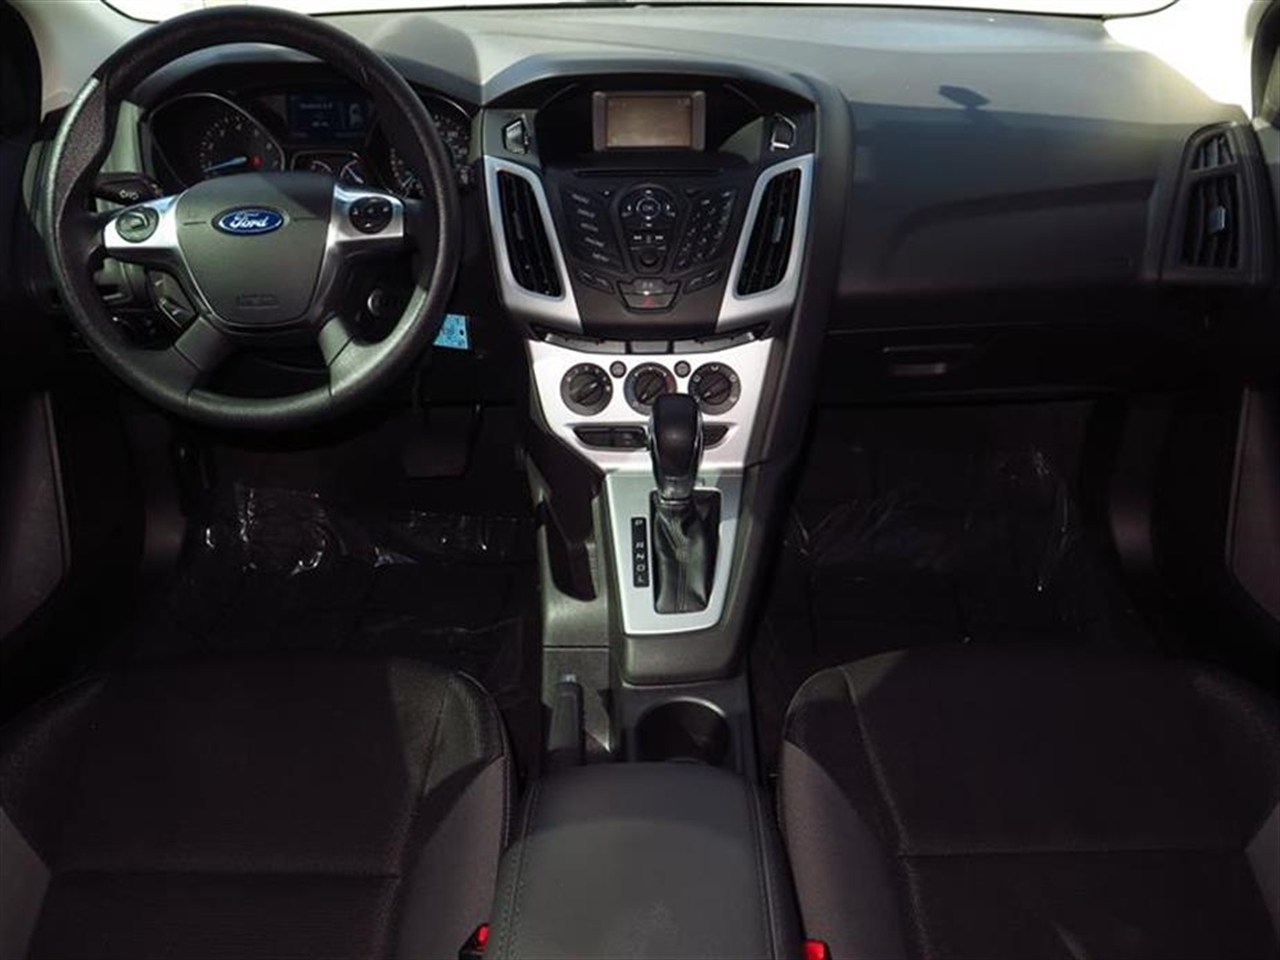 2014 FORD FOCUS 5dr HB SE 23037 miles 2 12V DC Power Outlets 2 Seatback Storage Pockets 4-Way P